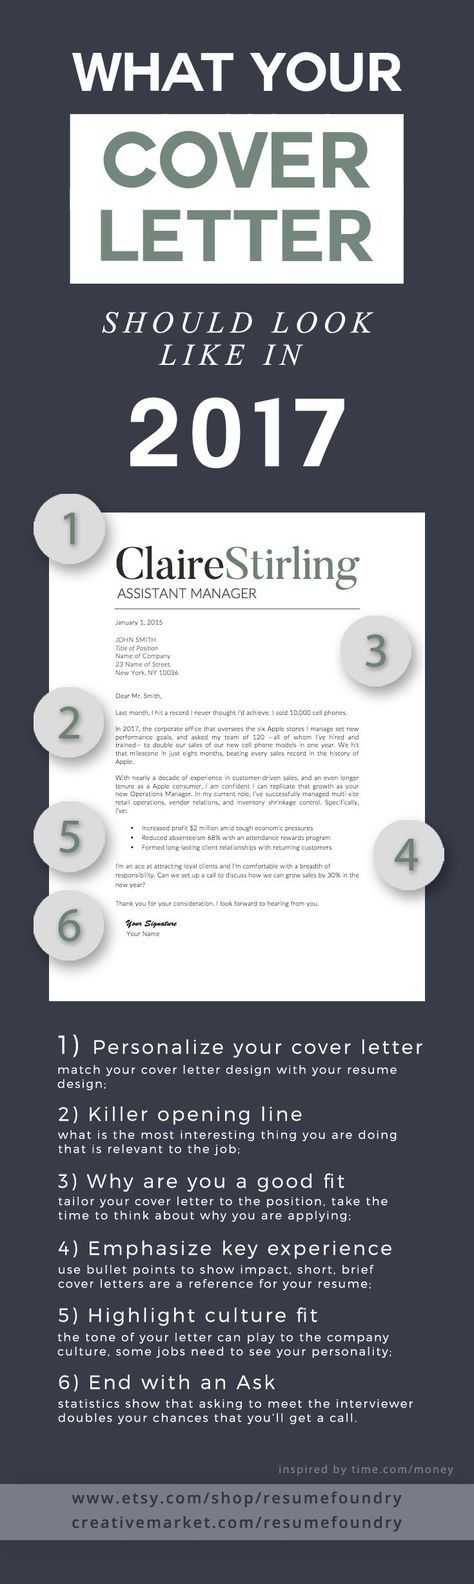 51 best Resume \ Cover Letter Designs images on Pinterest Letter - reasons why you should customize your cover letter